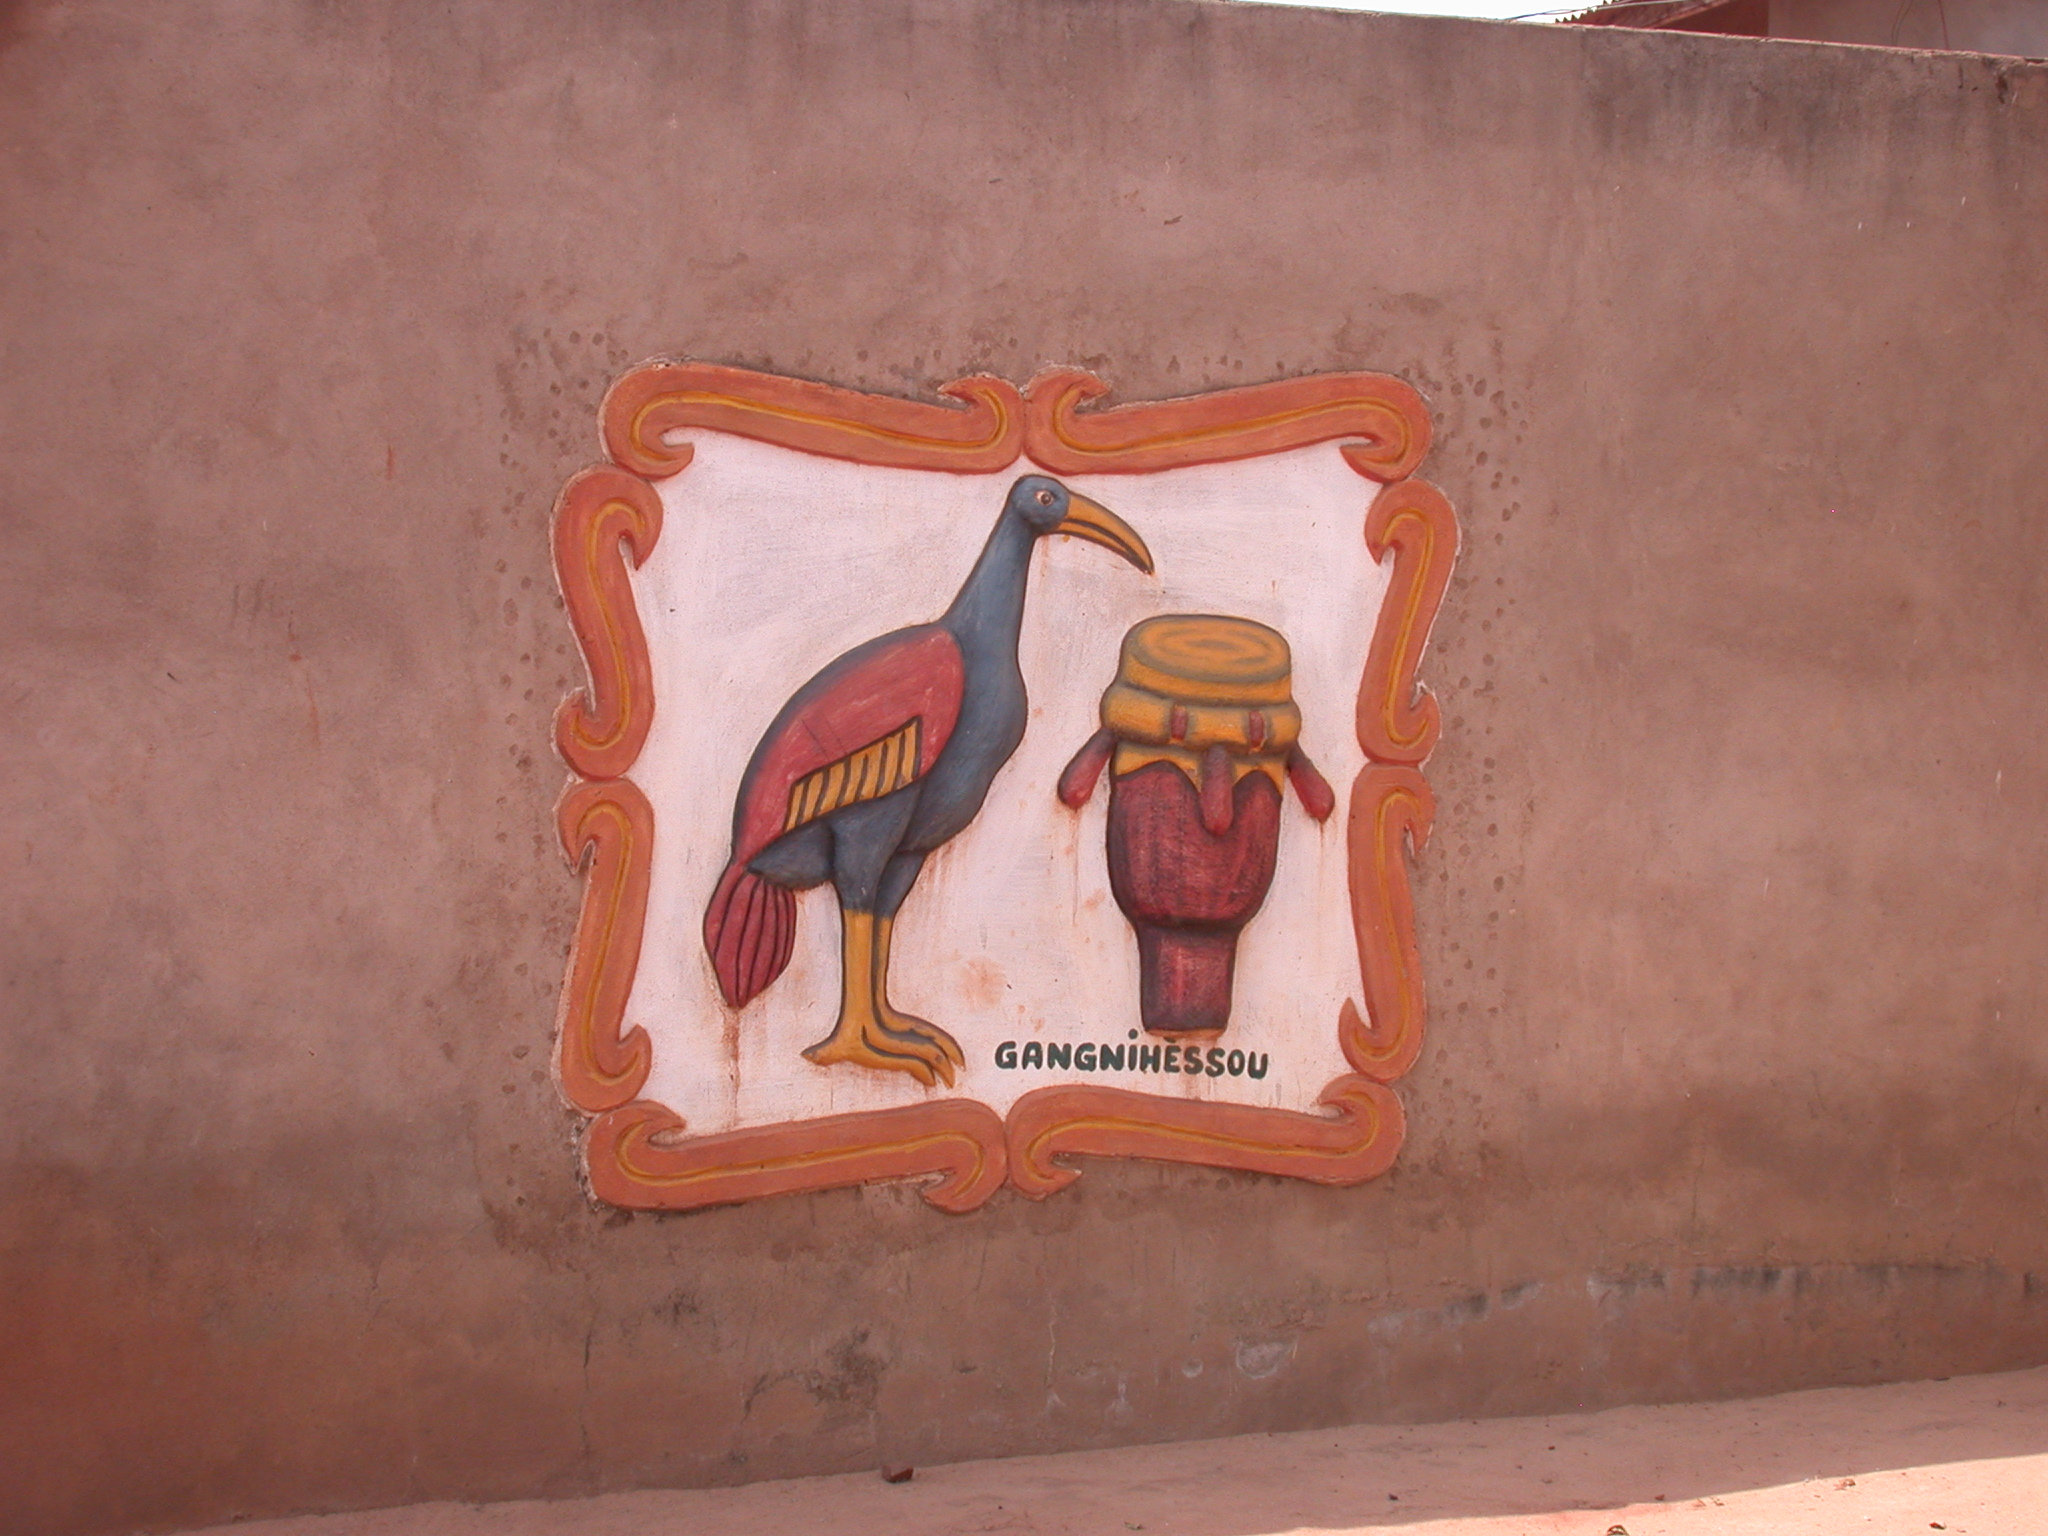 Gangnihessou Symbol on Compound Wall, Houemou Agonglo Temple, Abomey, Benin